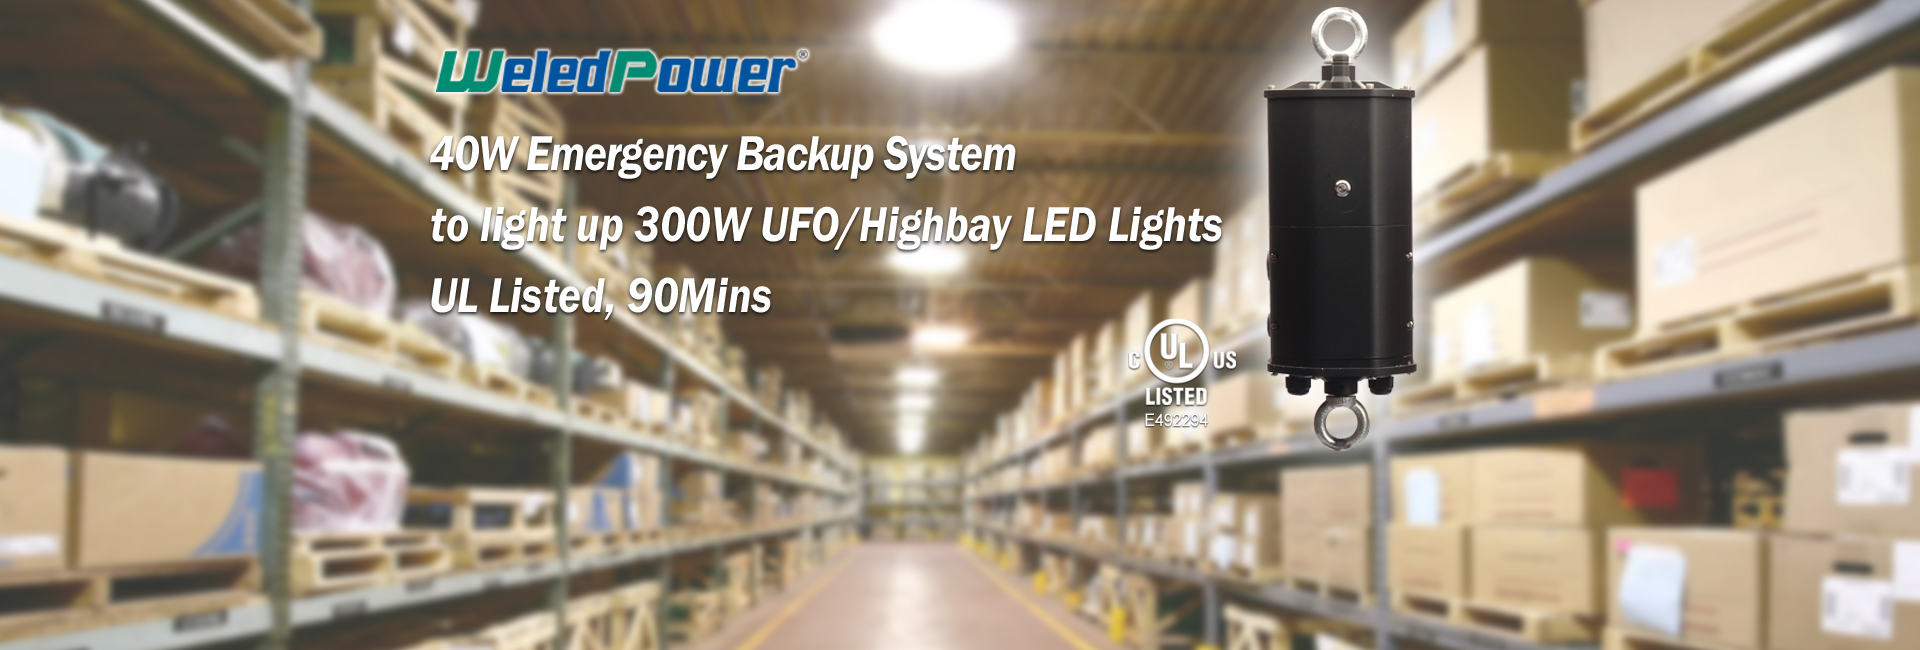 EMERGENCY BACKUP SYSTEM FOR LED HIGHBAY /UFO